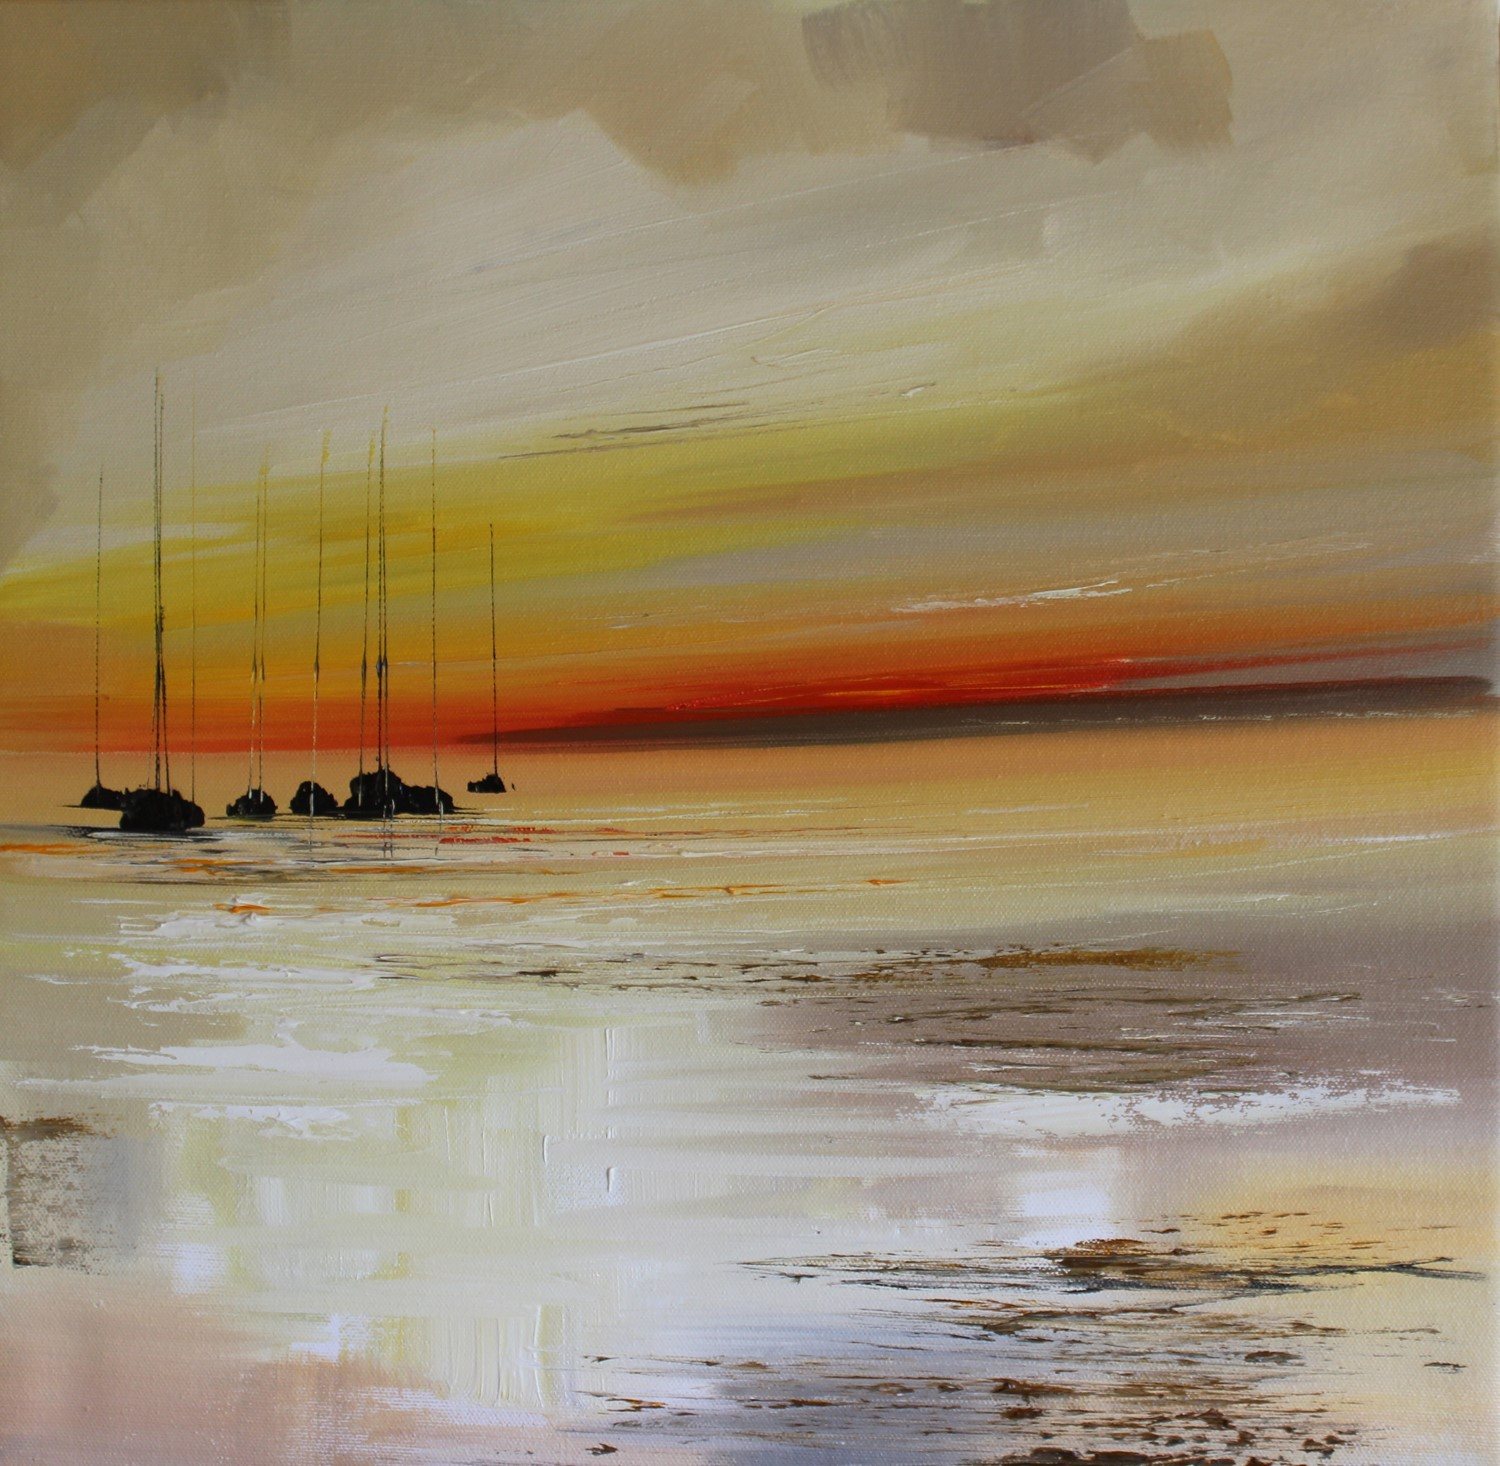 'Seven Yachts at Sunset' by artist Rosanne Barr